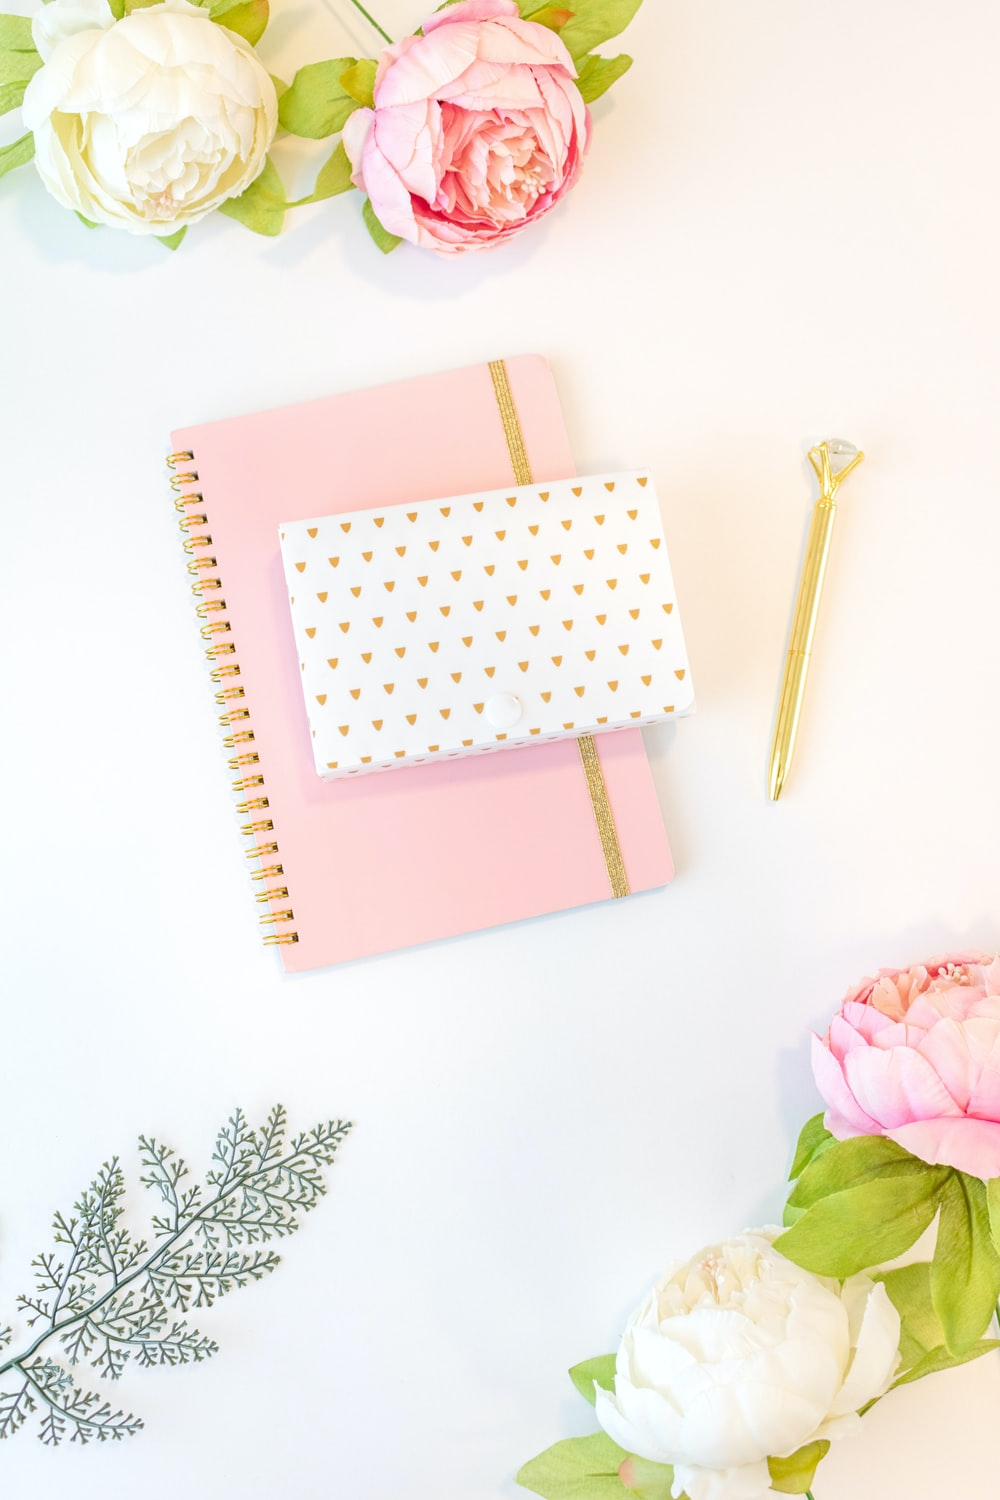 pink and white book on white and green floral textile